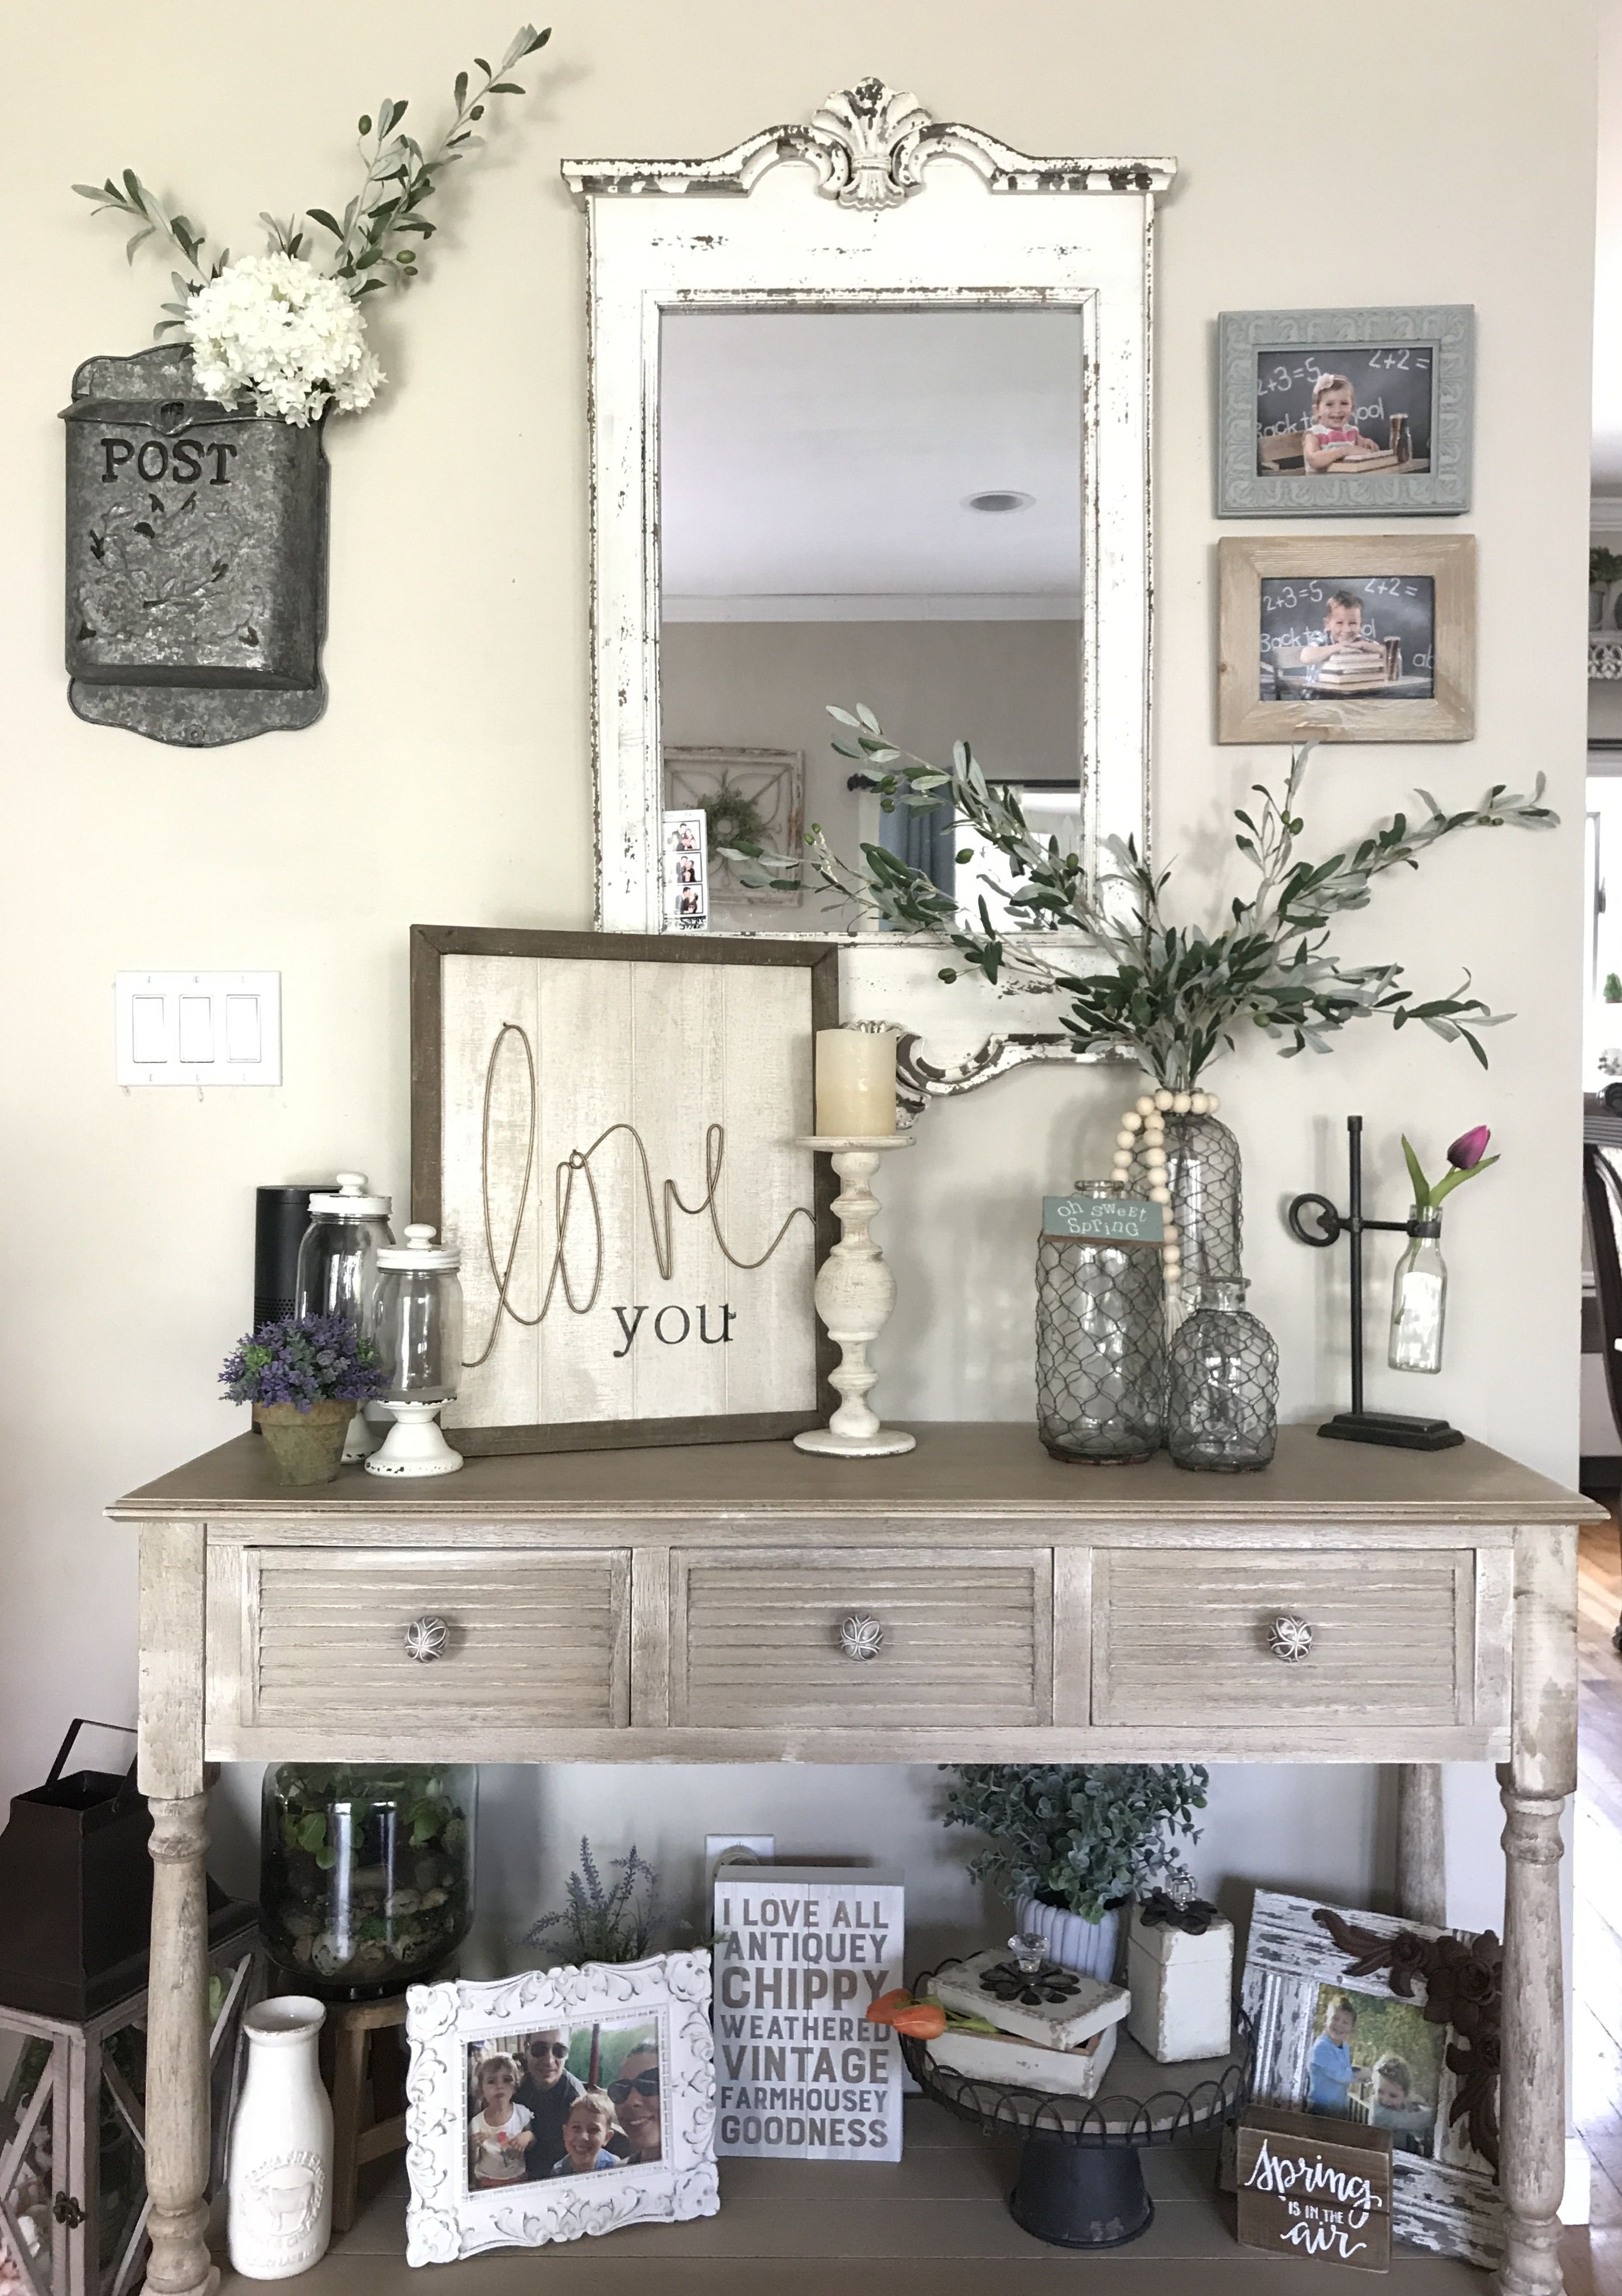 Comment Fixer Un Store Banne Manuel Rustic Decor And Console Table Decorated With Chicken Wire Vases